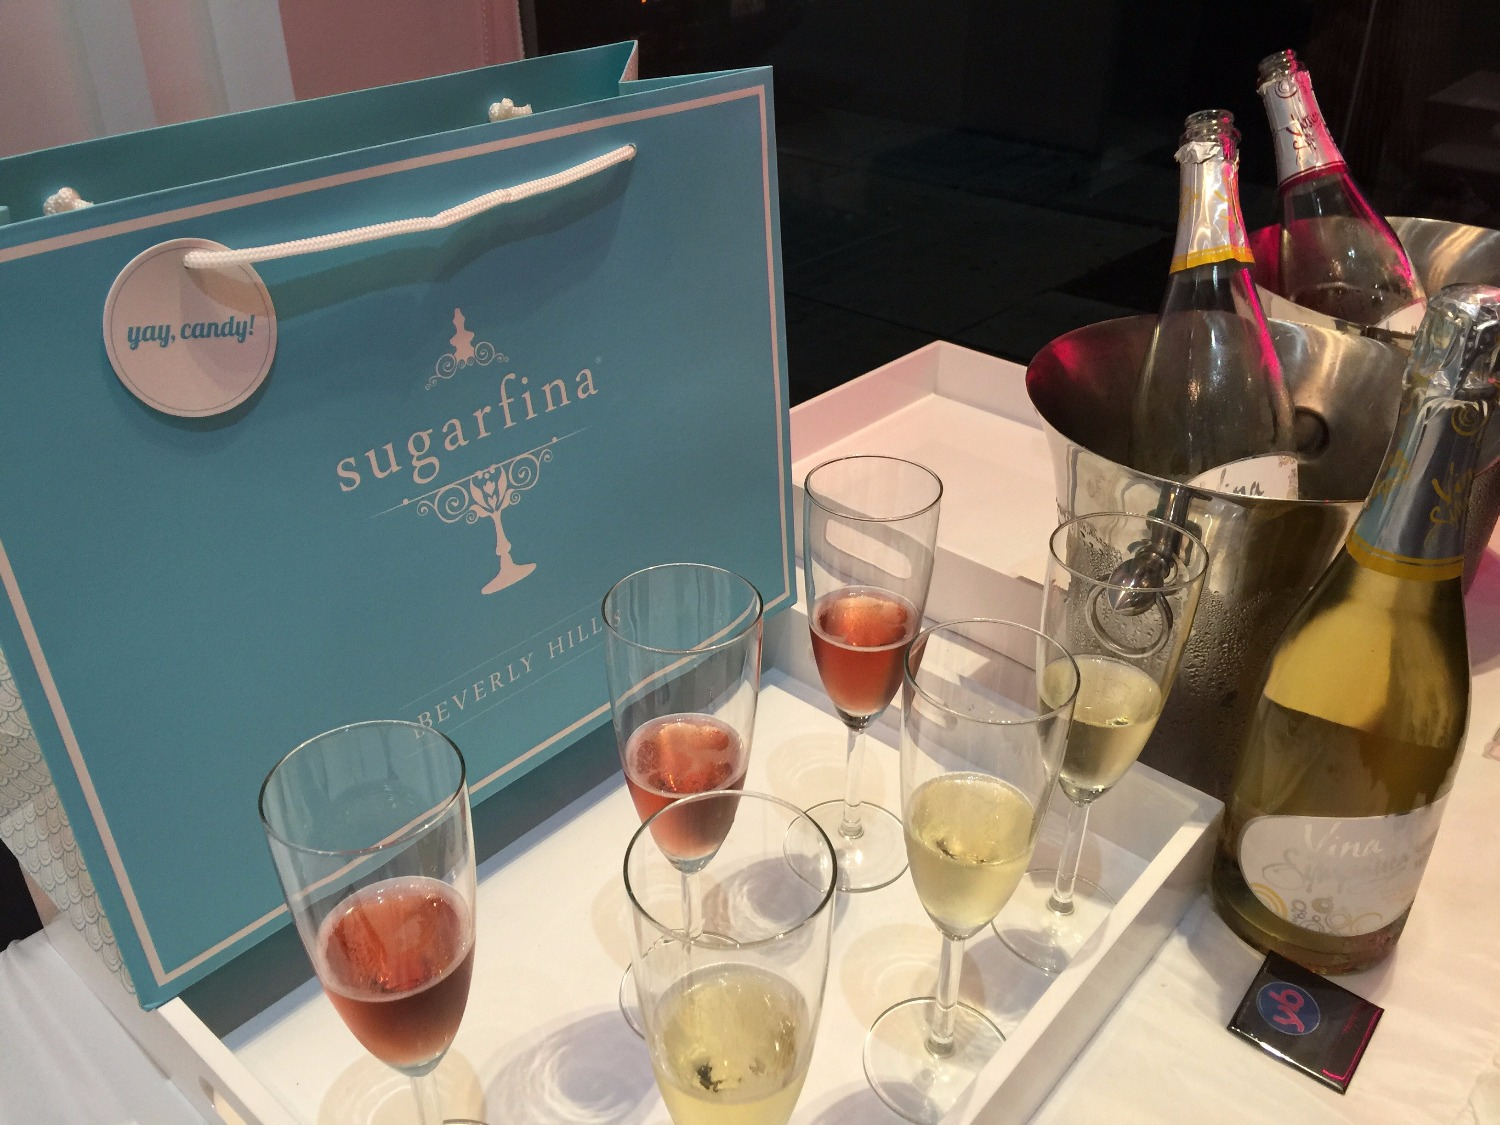 David Cruz Book Launch @ Sugarfina